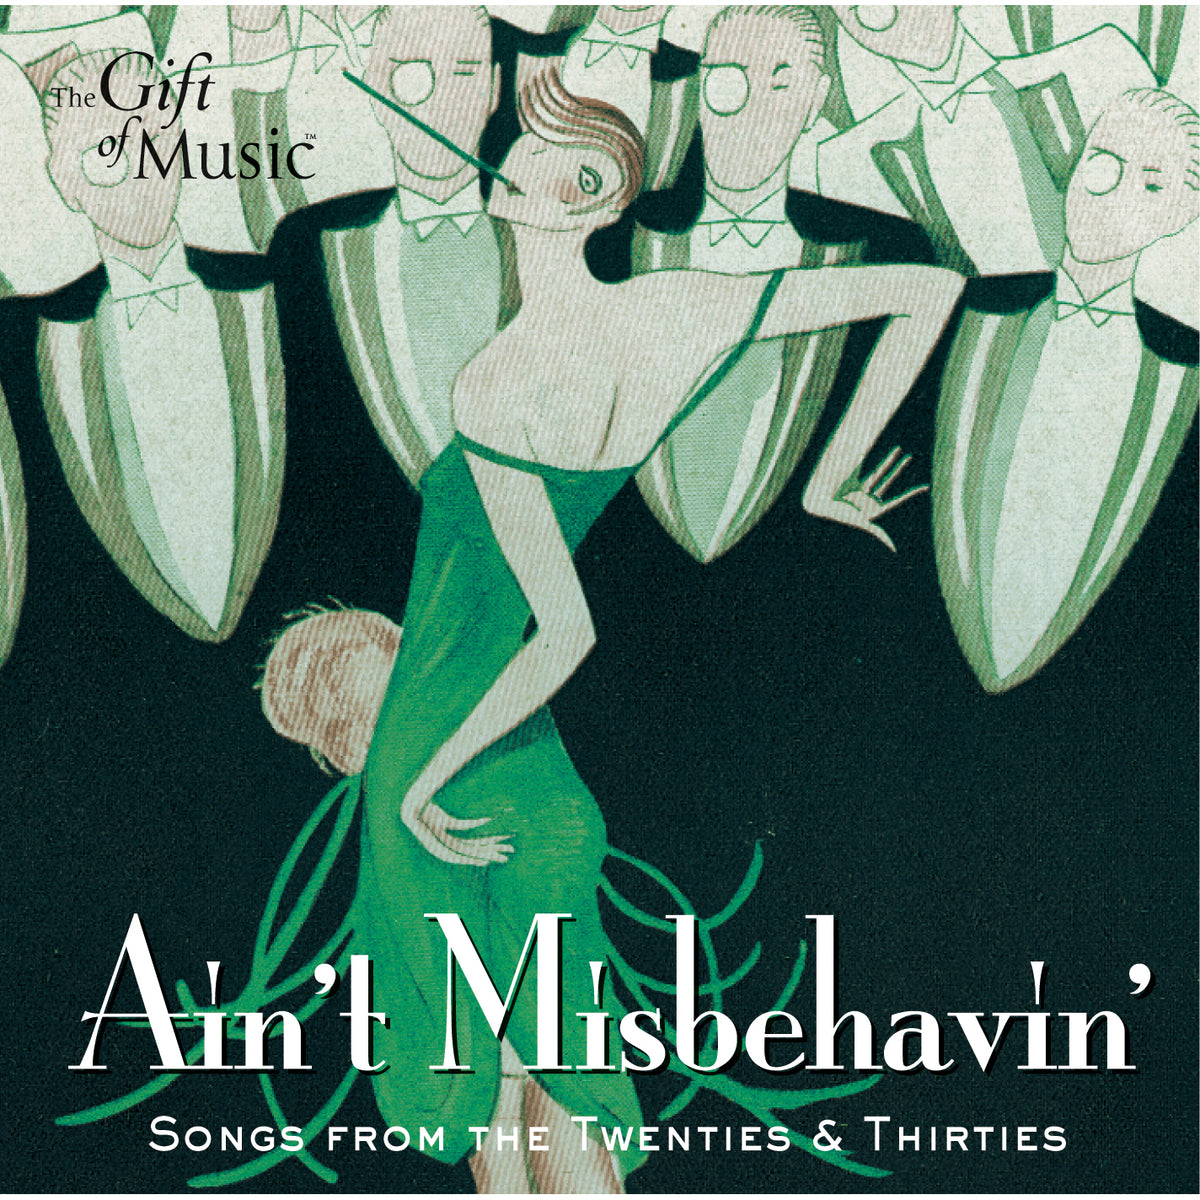 CD - Ain't Misbehavin': Songs From the Twenties and Thirties | Getty Store